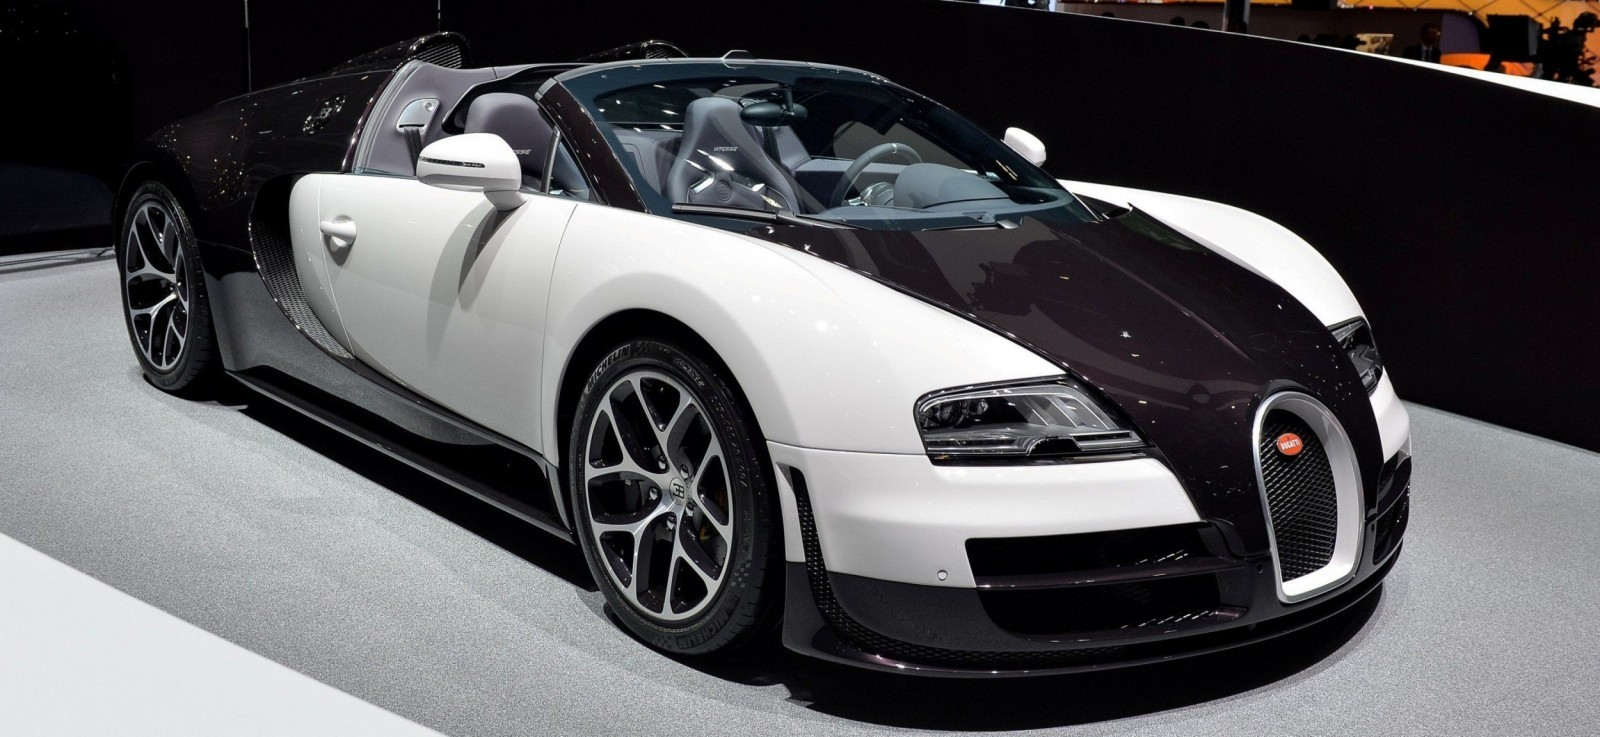 veyron gs vitesse legend ettore bugatti is pebble beach. Black Bedroom Furniture Sets. Home Design Ideas